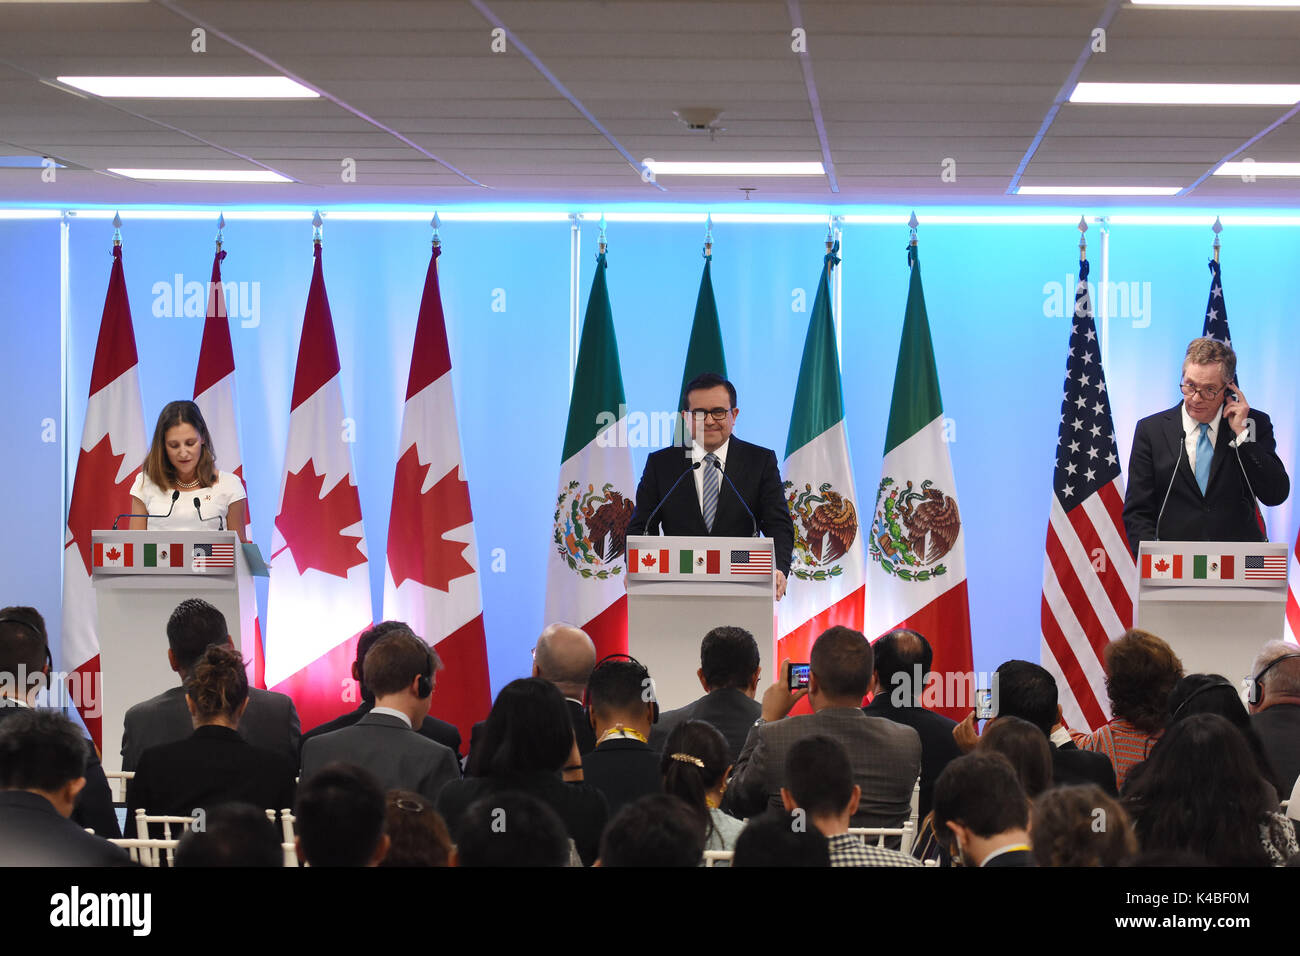 the nafta canada mexico and the usa He recalls life before the north american free-trade agreement (nafta), a trade deal linking mexico with america and canada.